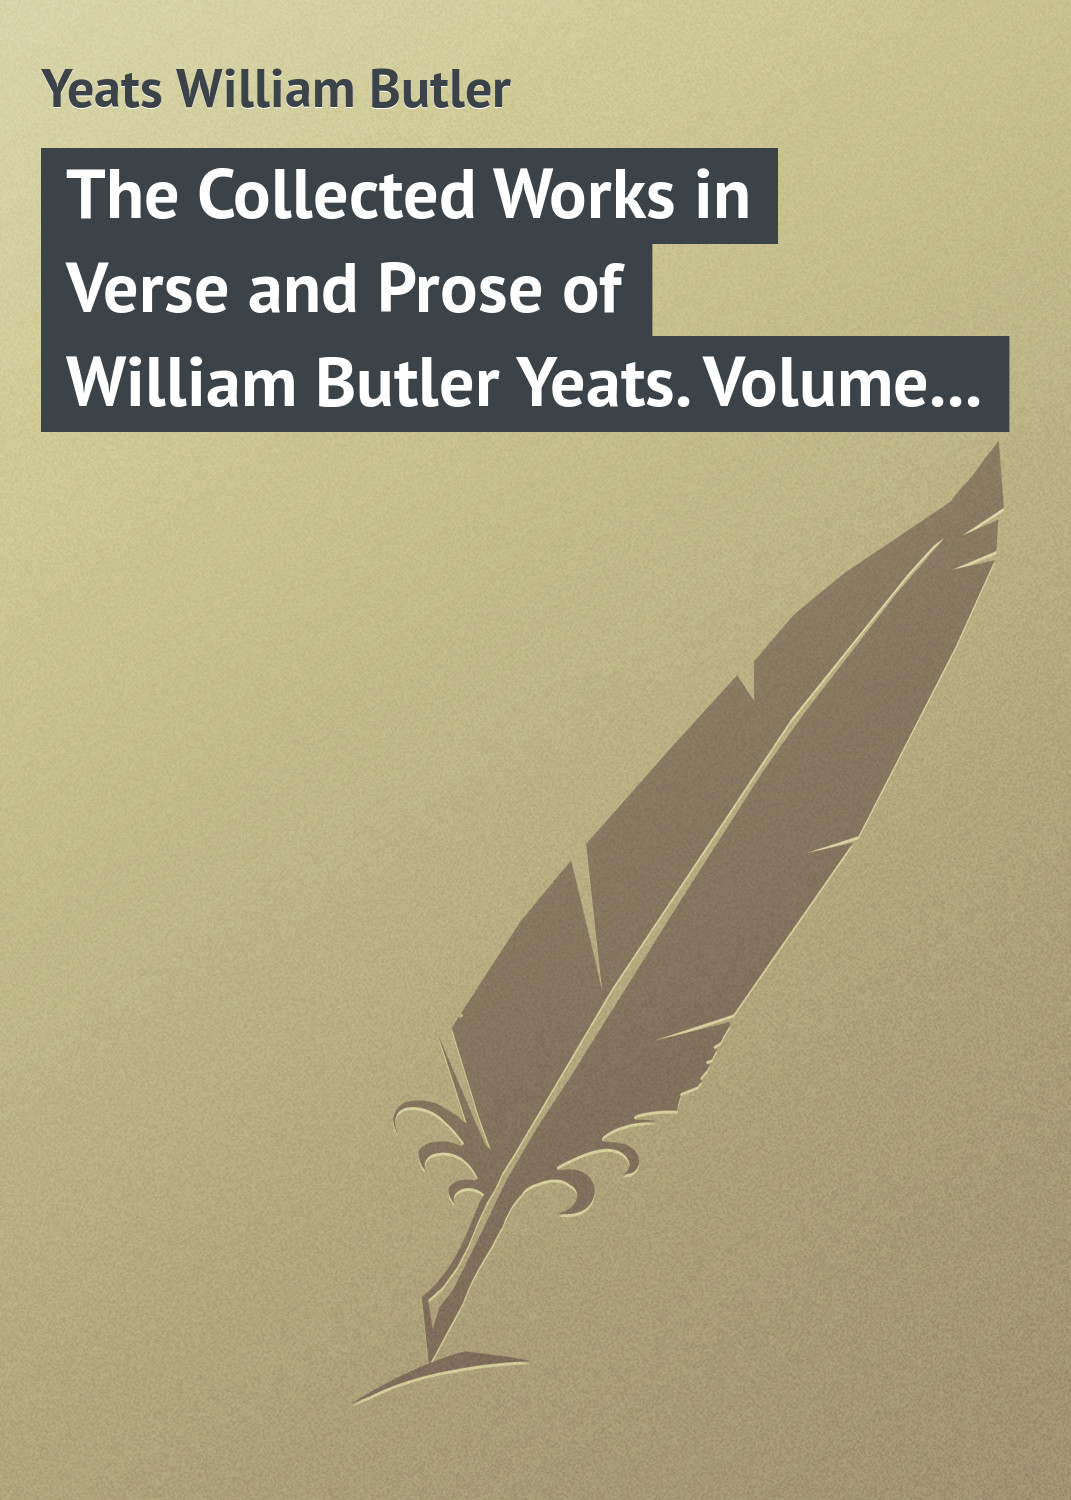 William Butler Yeats The Collected Works in Verse and Prose of William Butler Yeats. Volume 3 of 8. The Countess Cathleen. The Land of Heart's Desire. The Unicorn from the Stars william butler yeats the tables of the law